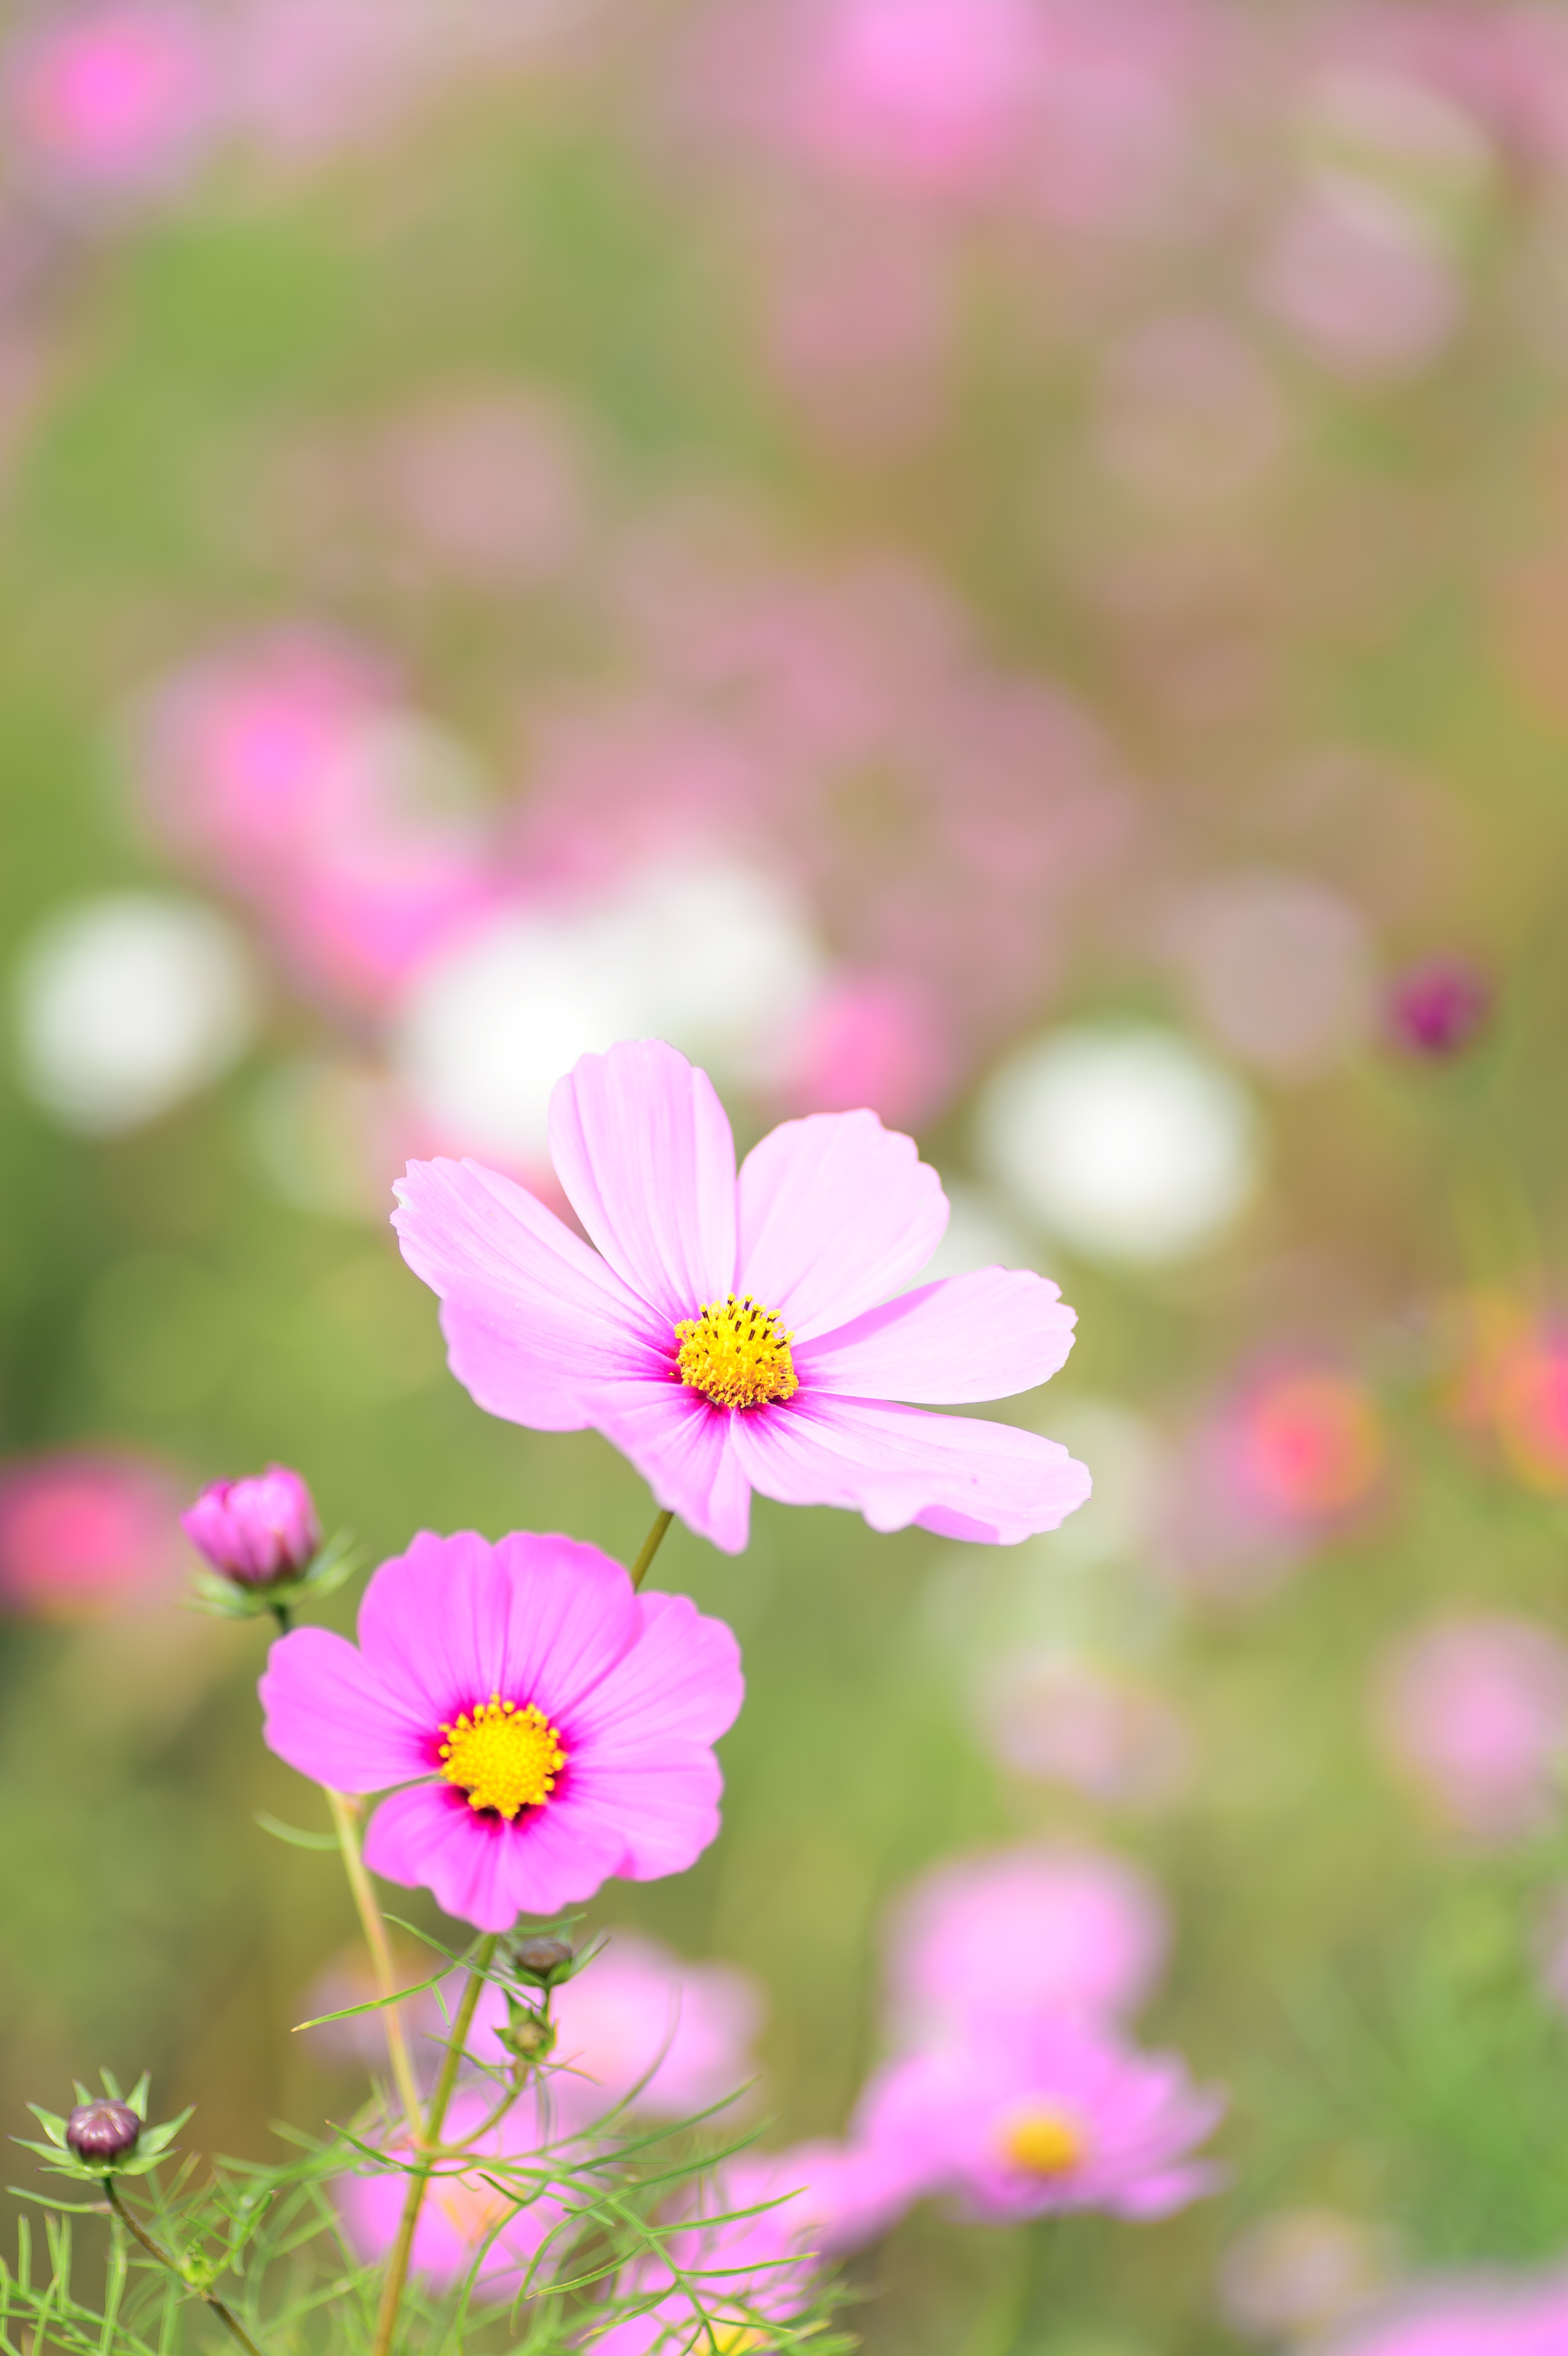 Free Download Car Wallpapers For Desktop Nature Photography Of Focus Pink Petaled Flower 183 Free